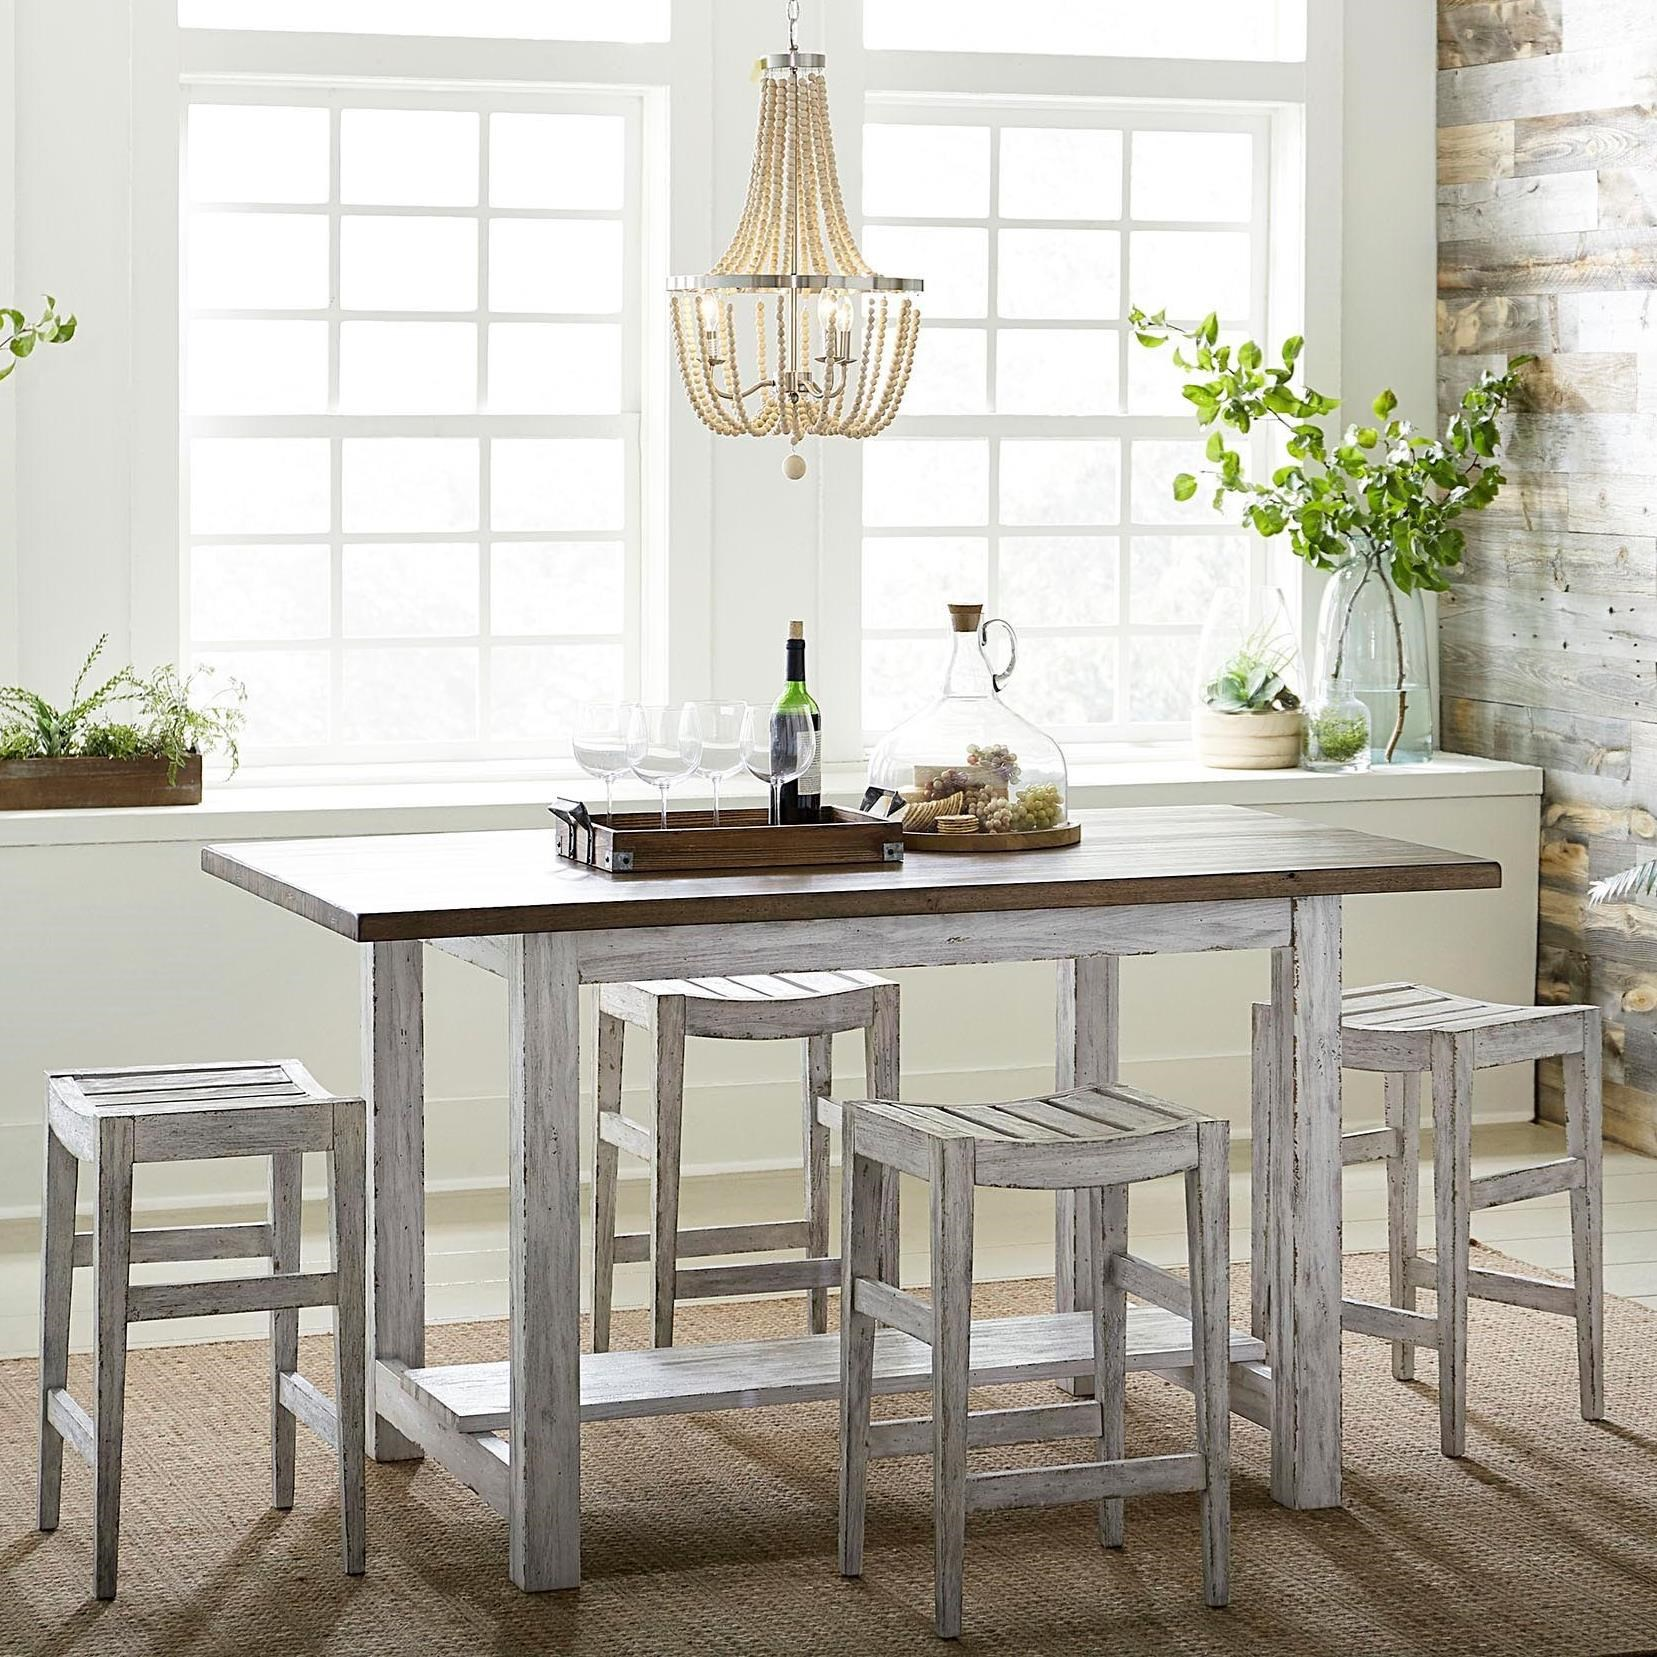 5-Piece Gathering Table Set